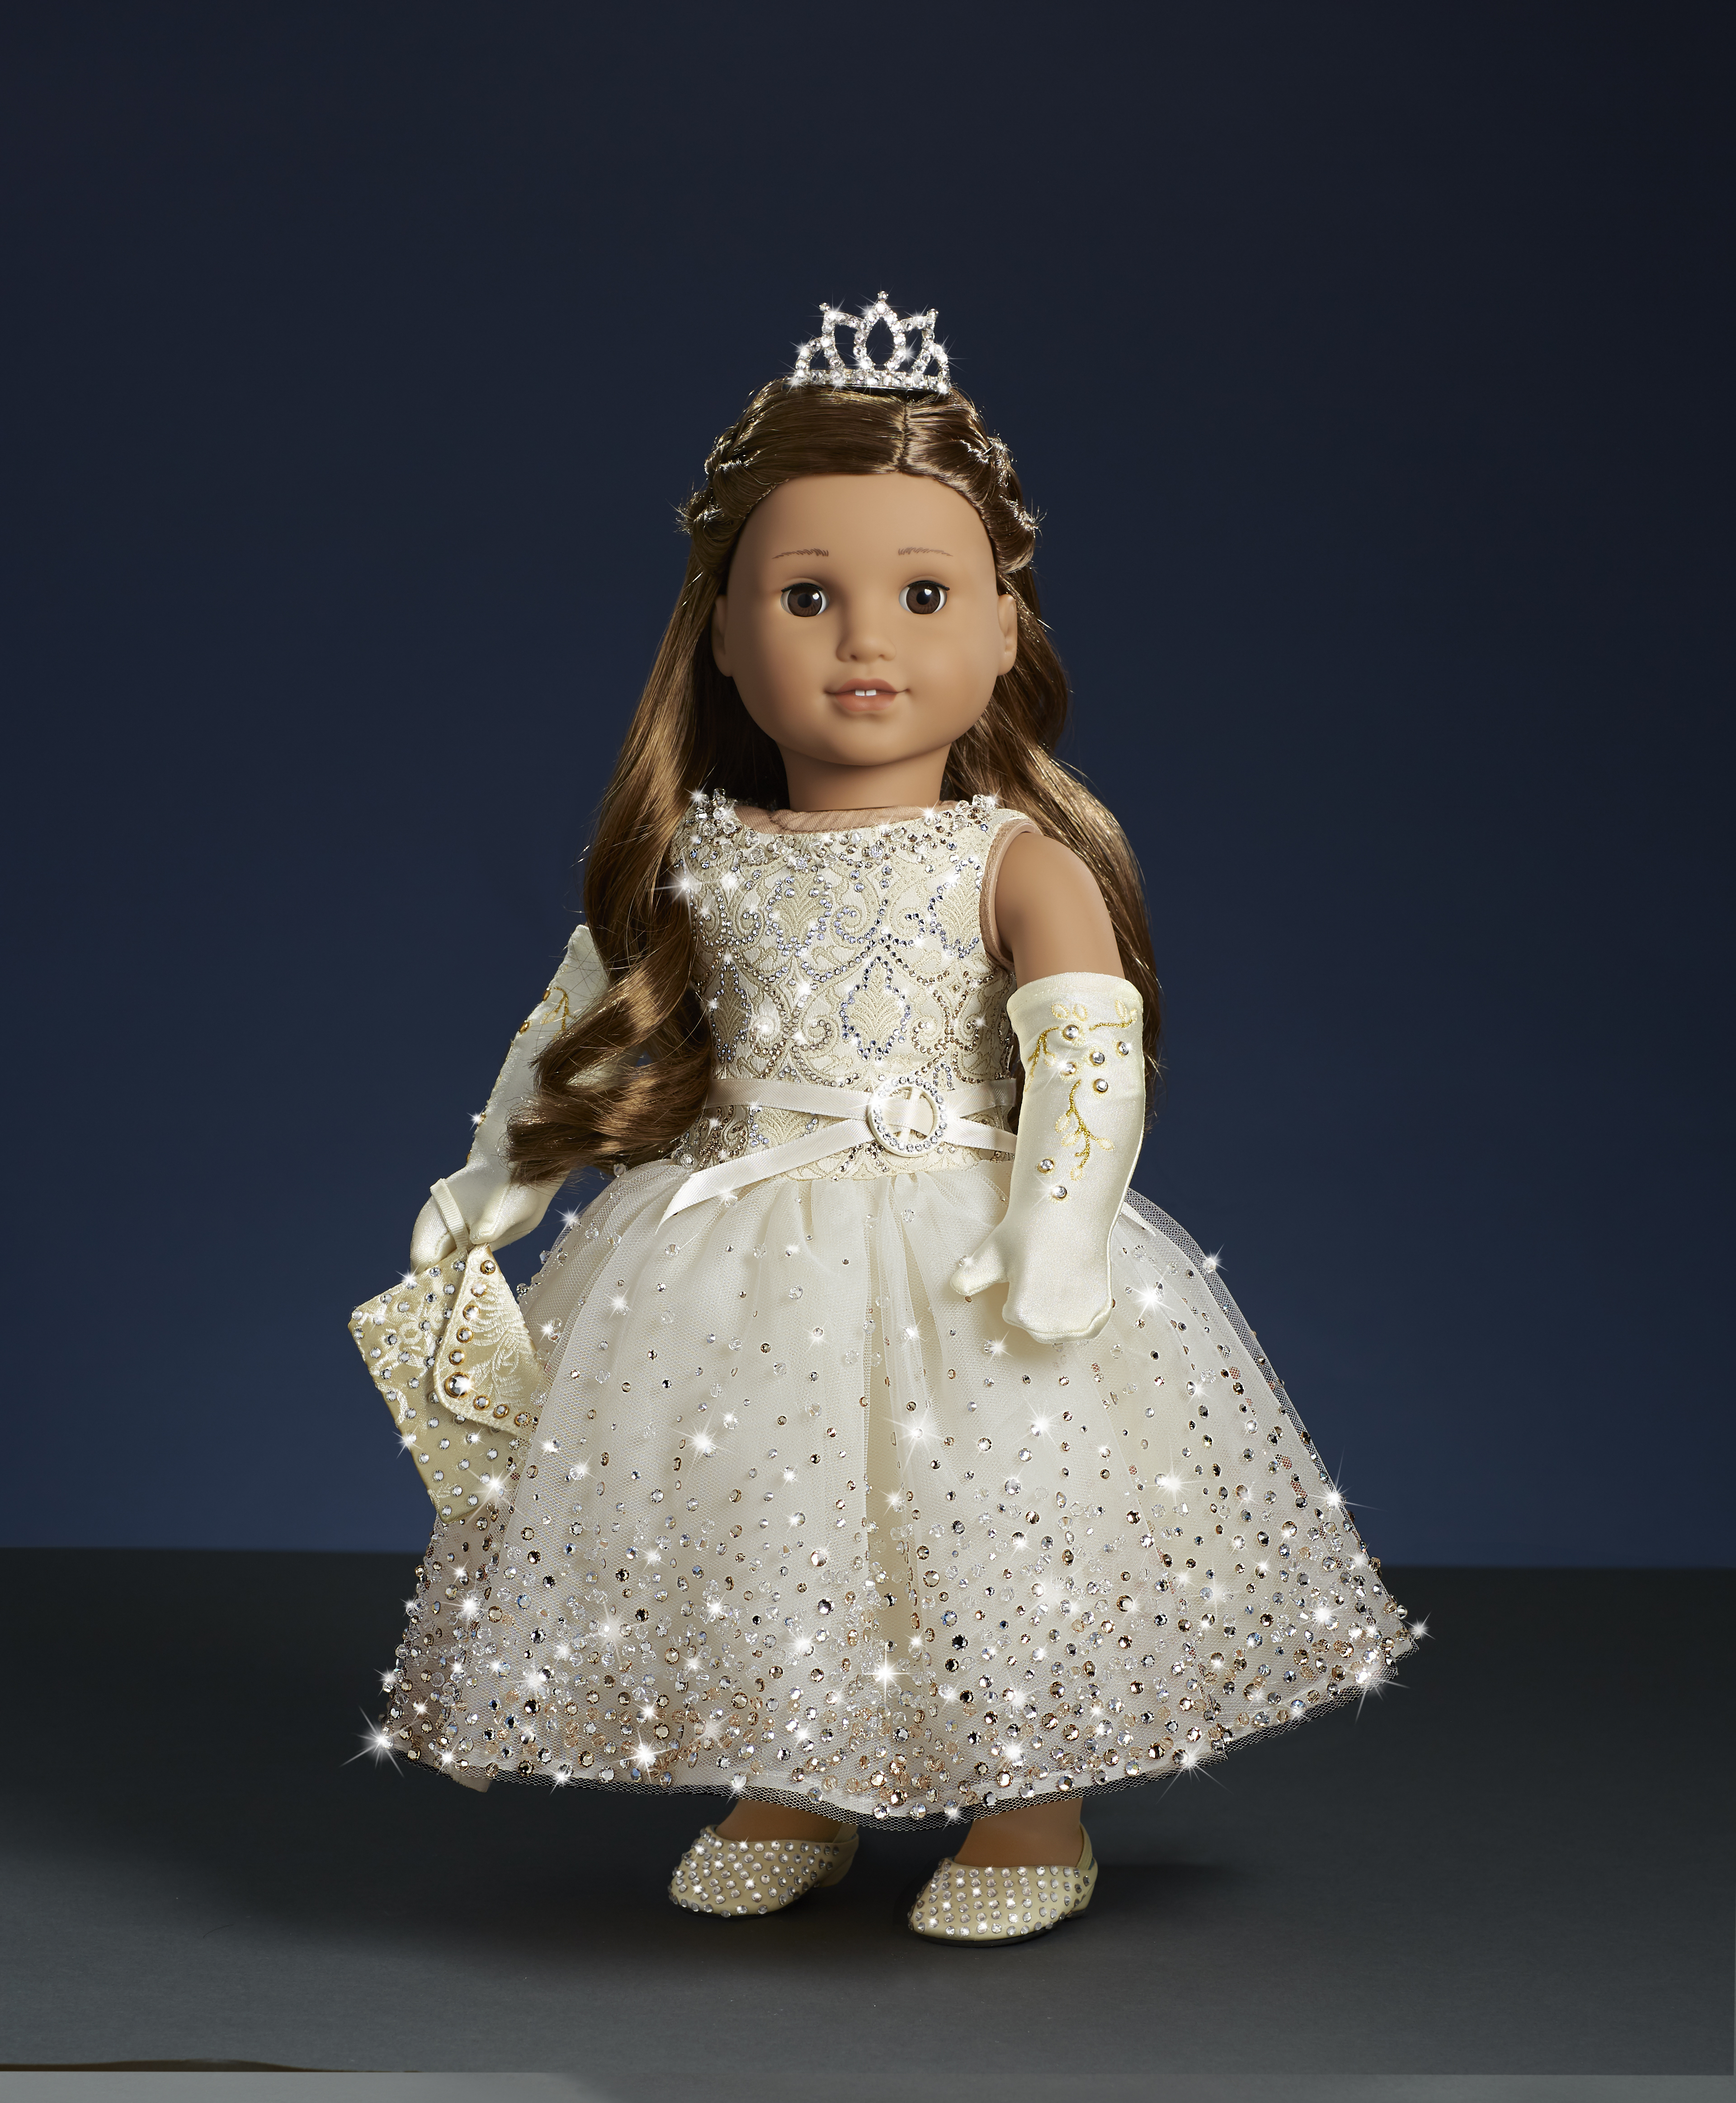 Baby Dolls Vip American Girl To Unveil Holiday Windows In New York Chicago